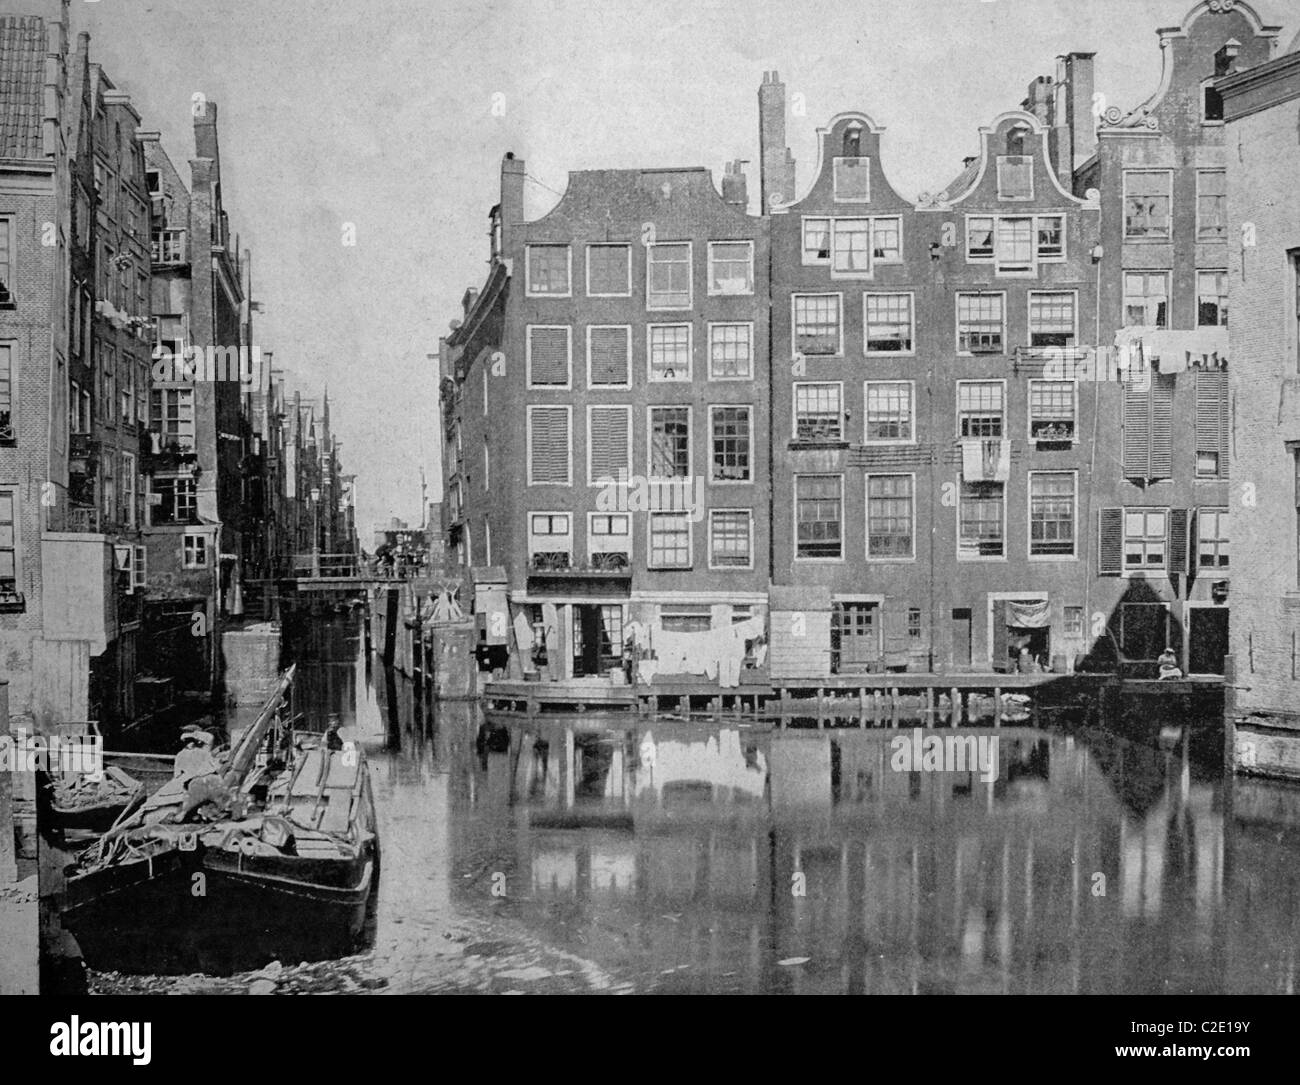 Early autotype of Amsterdam, North Holland, Netherlands, historical picture, 1884 - Stock Image